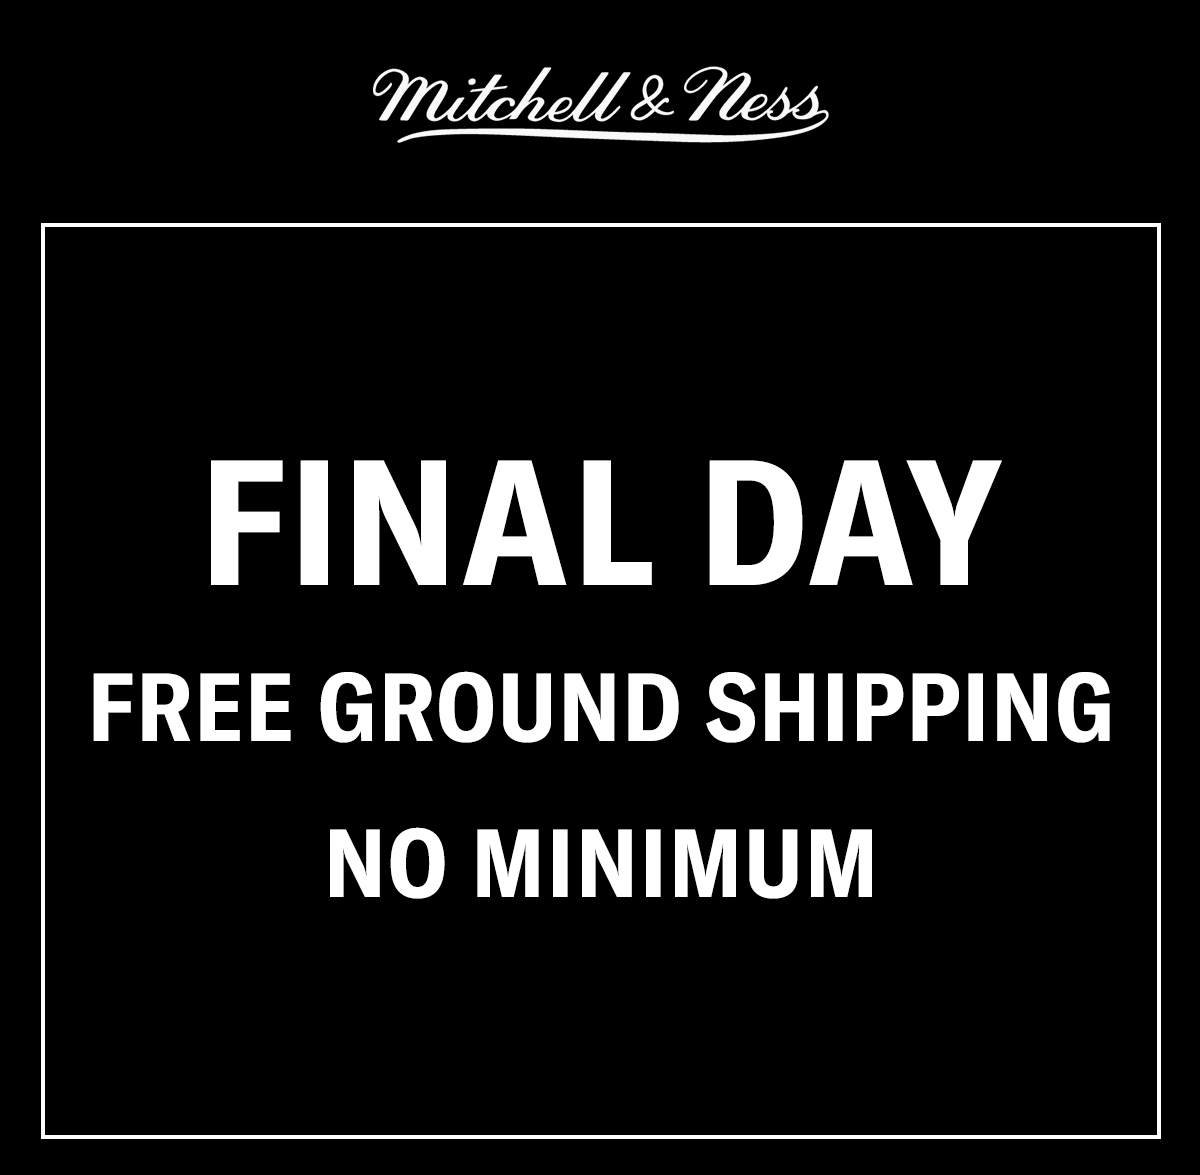 FINAL DAY FREE GROUND SHIPPING NO MINIMUM